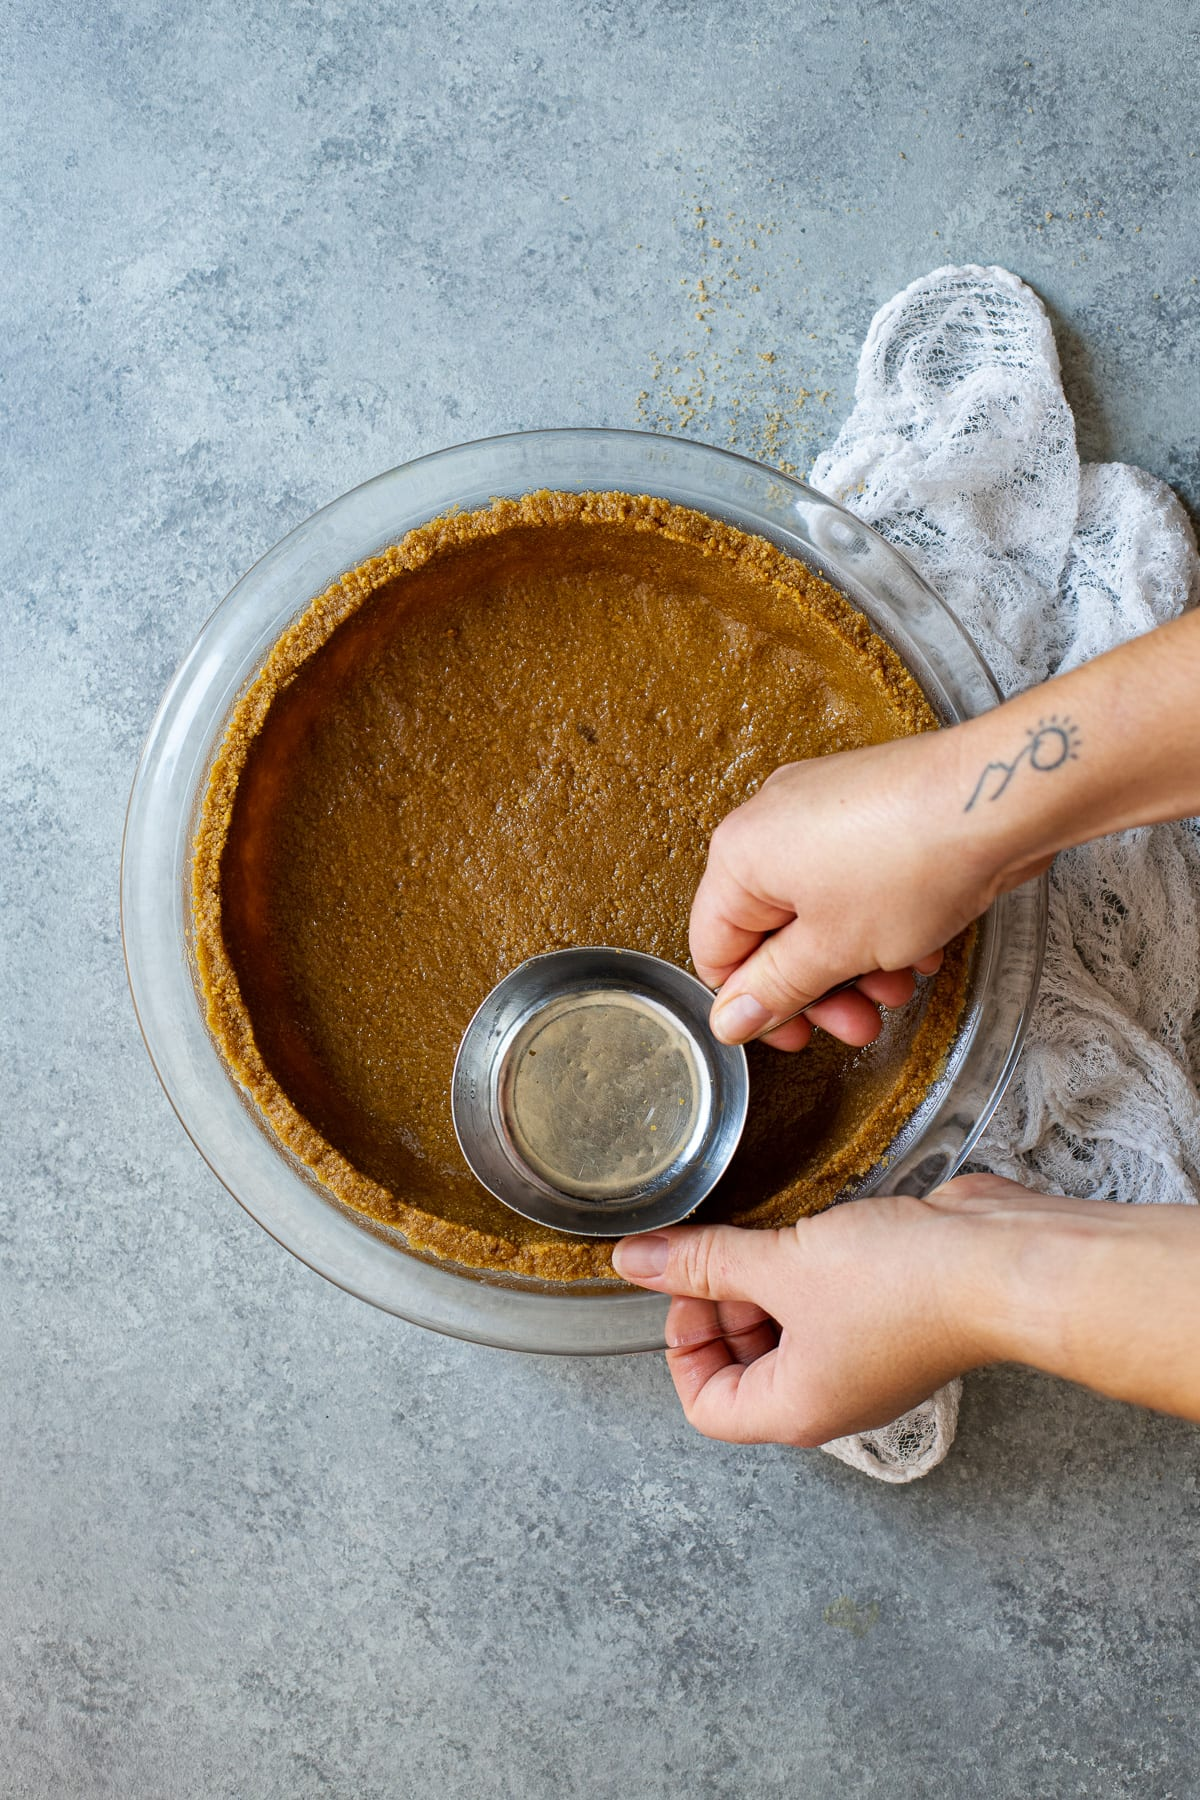 Pressing graham cracker crust into a pie dish with the bottom of a measuring cup.